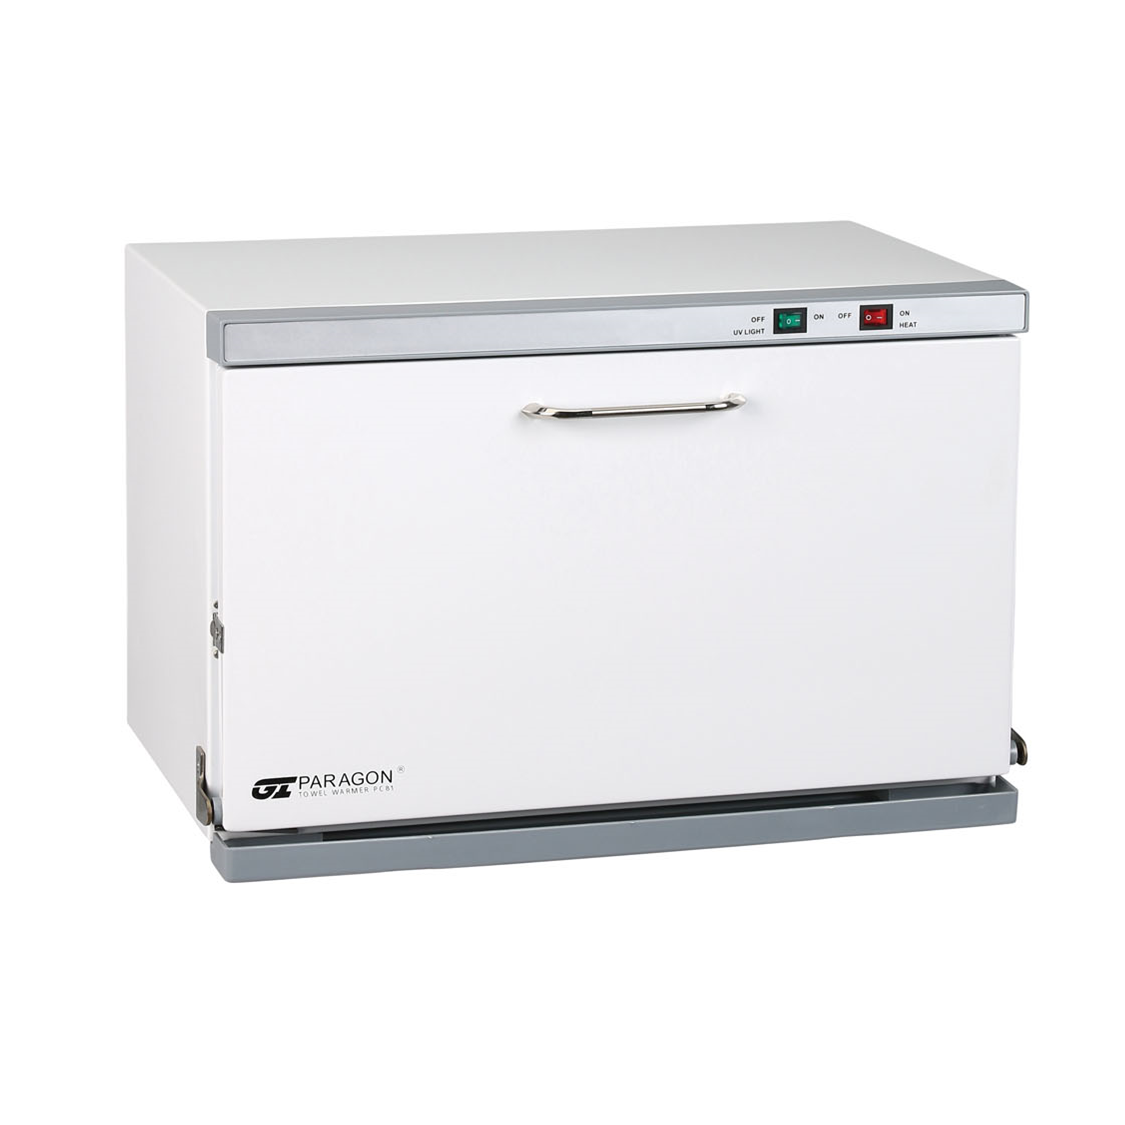 Paragon PC81A UV Sanitizer Hot Cabinet